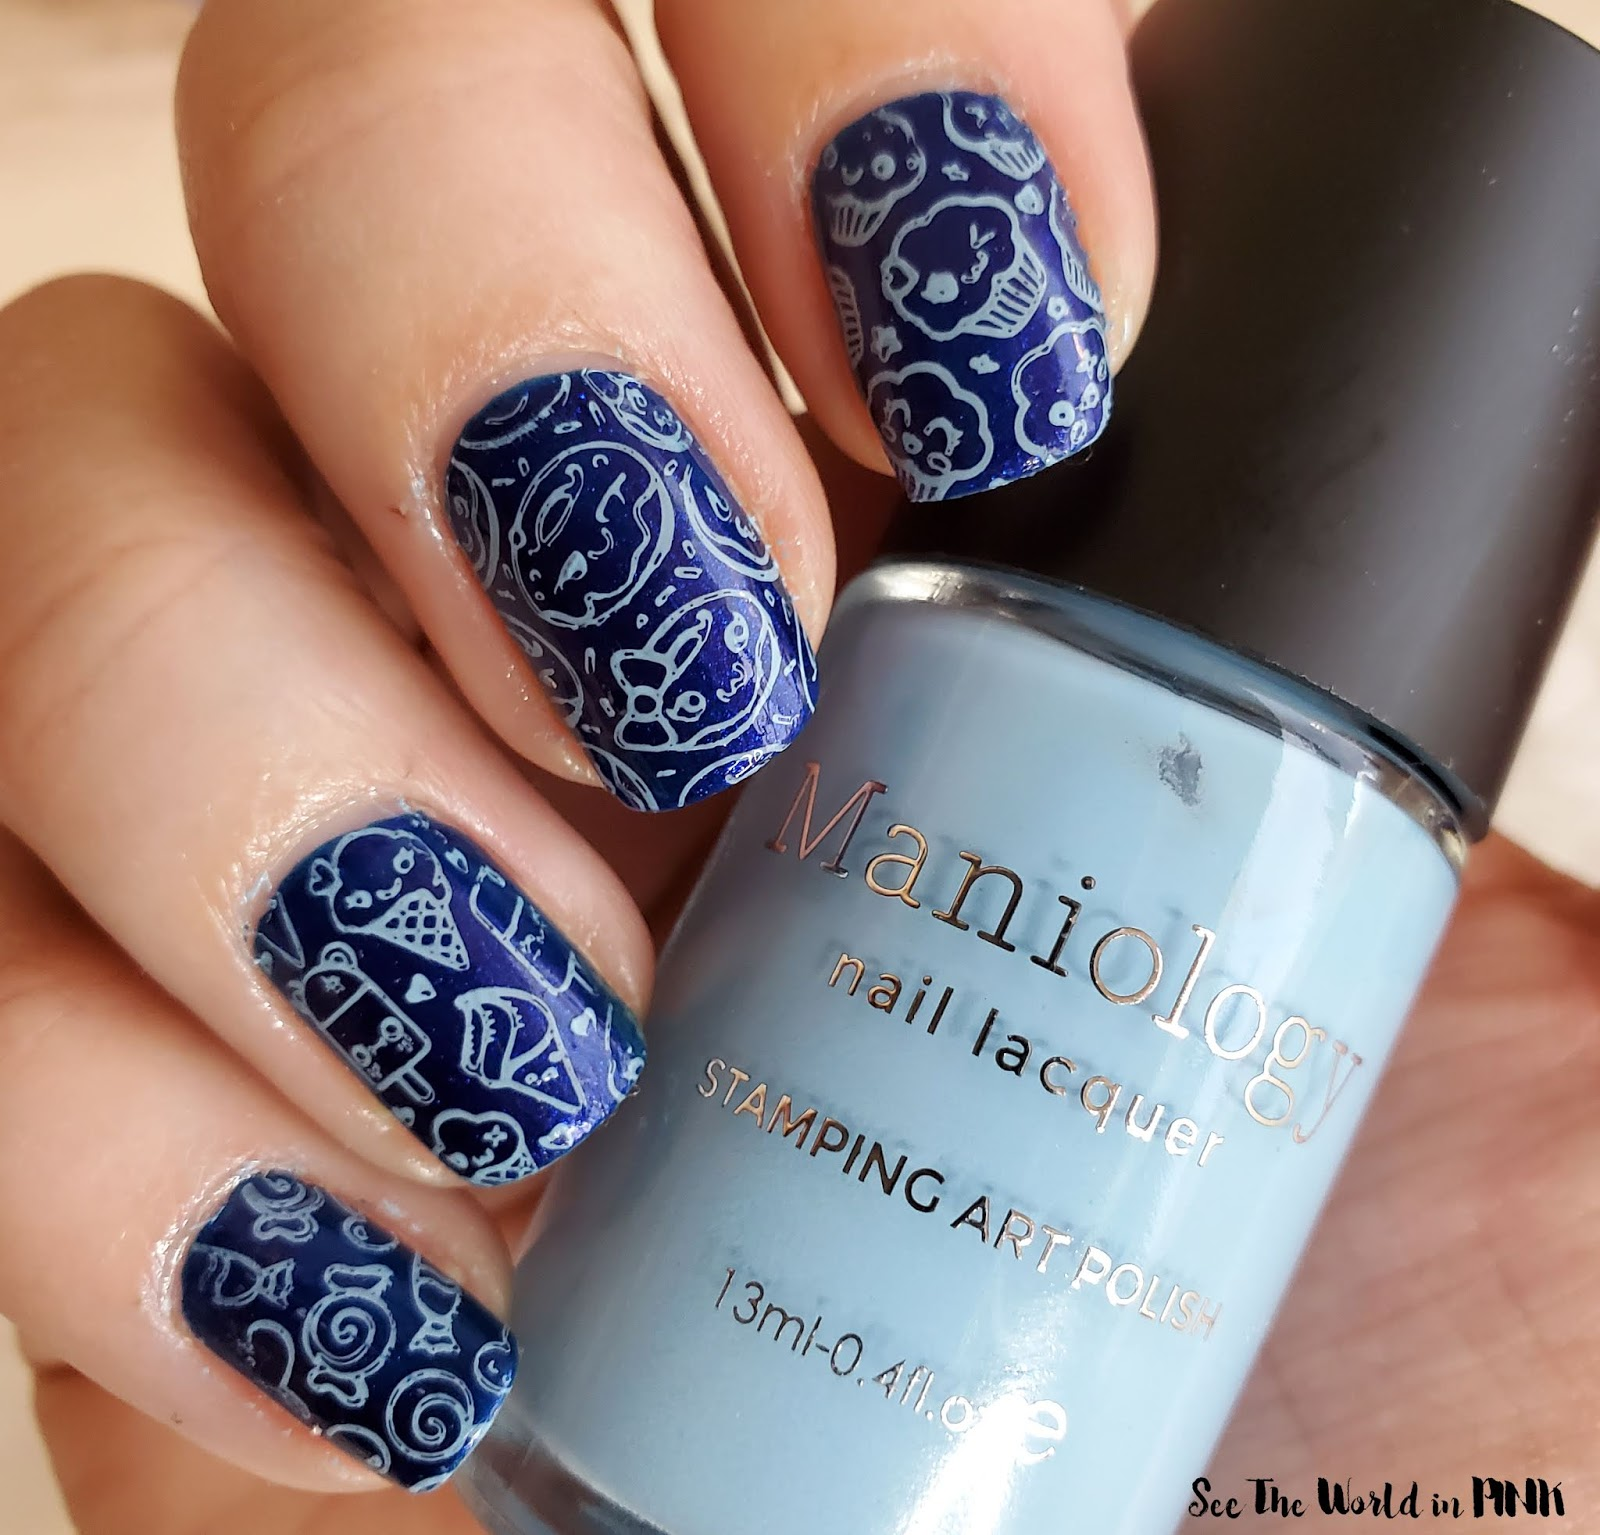 "Manicure Monday -"" Stay Home and Eat All The Treats"" Stamped Nails"